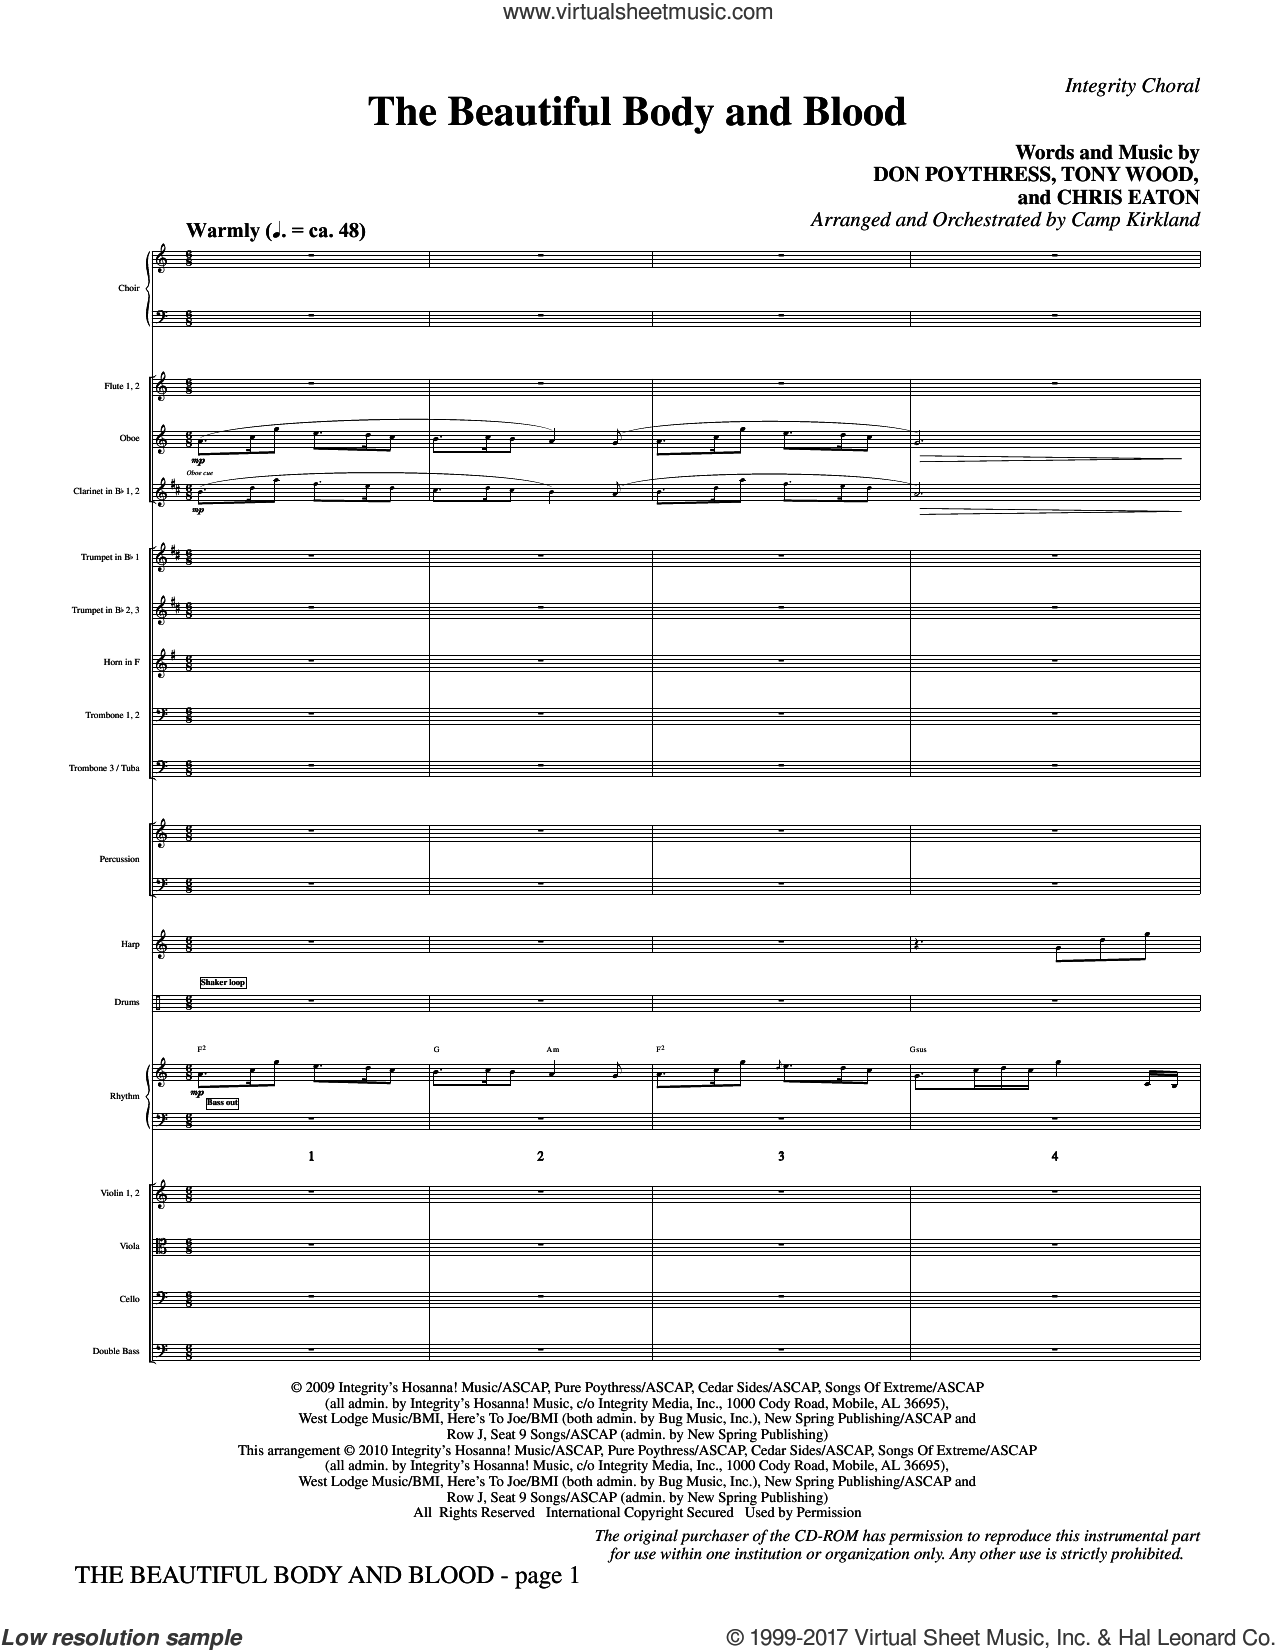 The Beautiful Body And Blood (complete set of parts) sheet music for orchestra/band (Orchestra) by Camp Kirkland, Chris Eaton, Don Poythress and Tony Wood, intermediate orchestra. Score Image Preview.